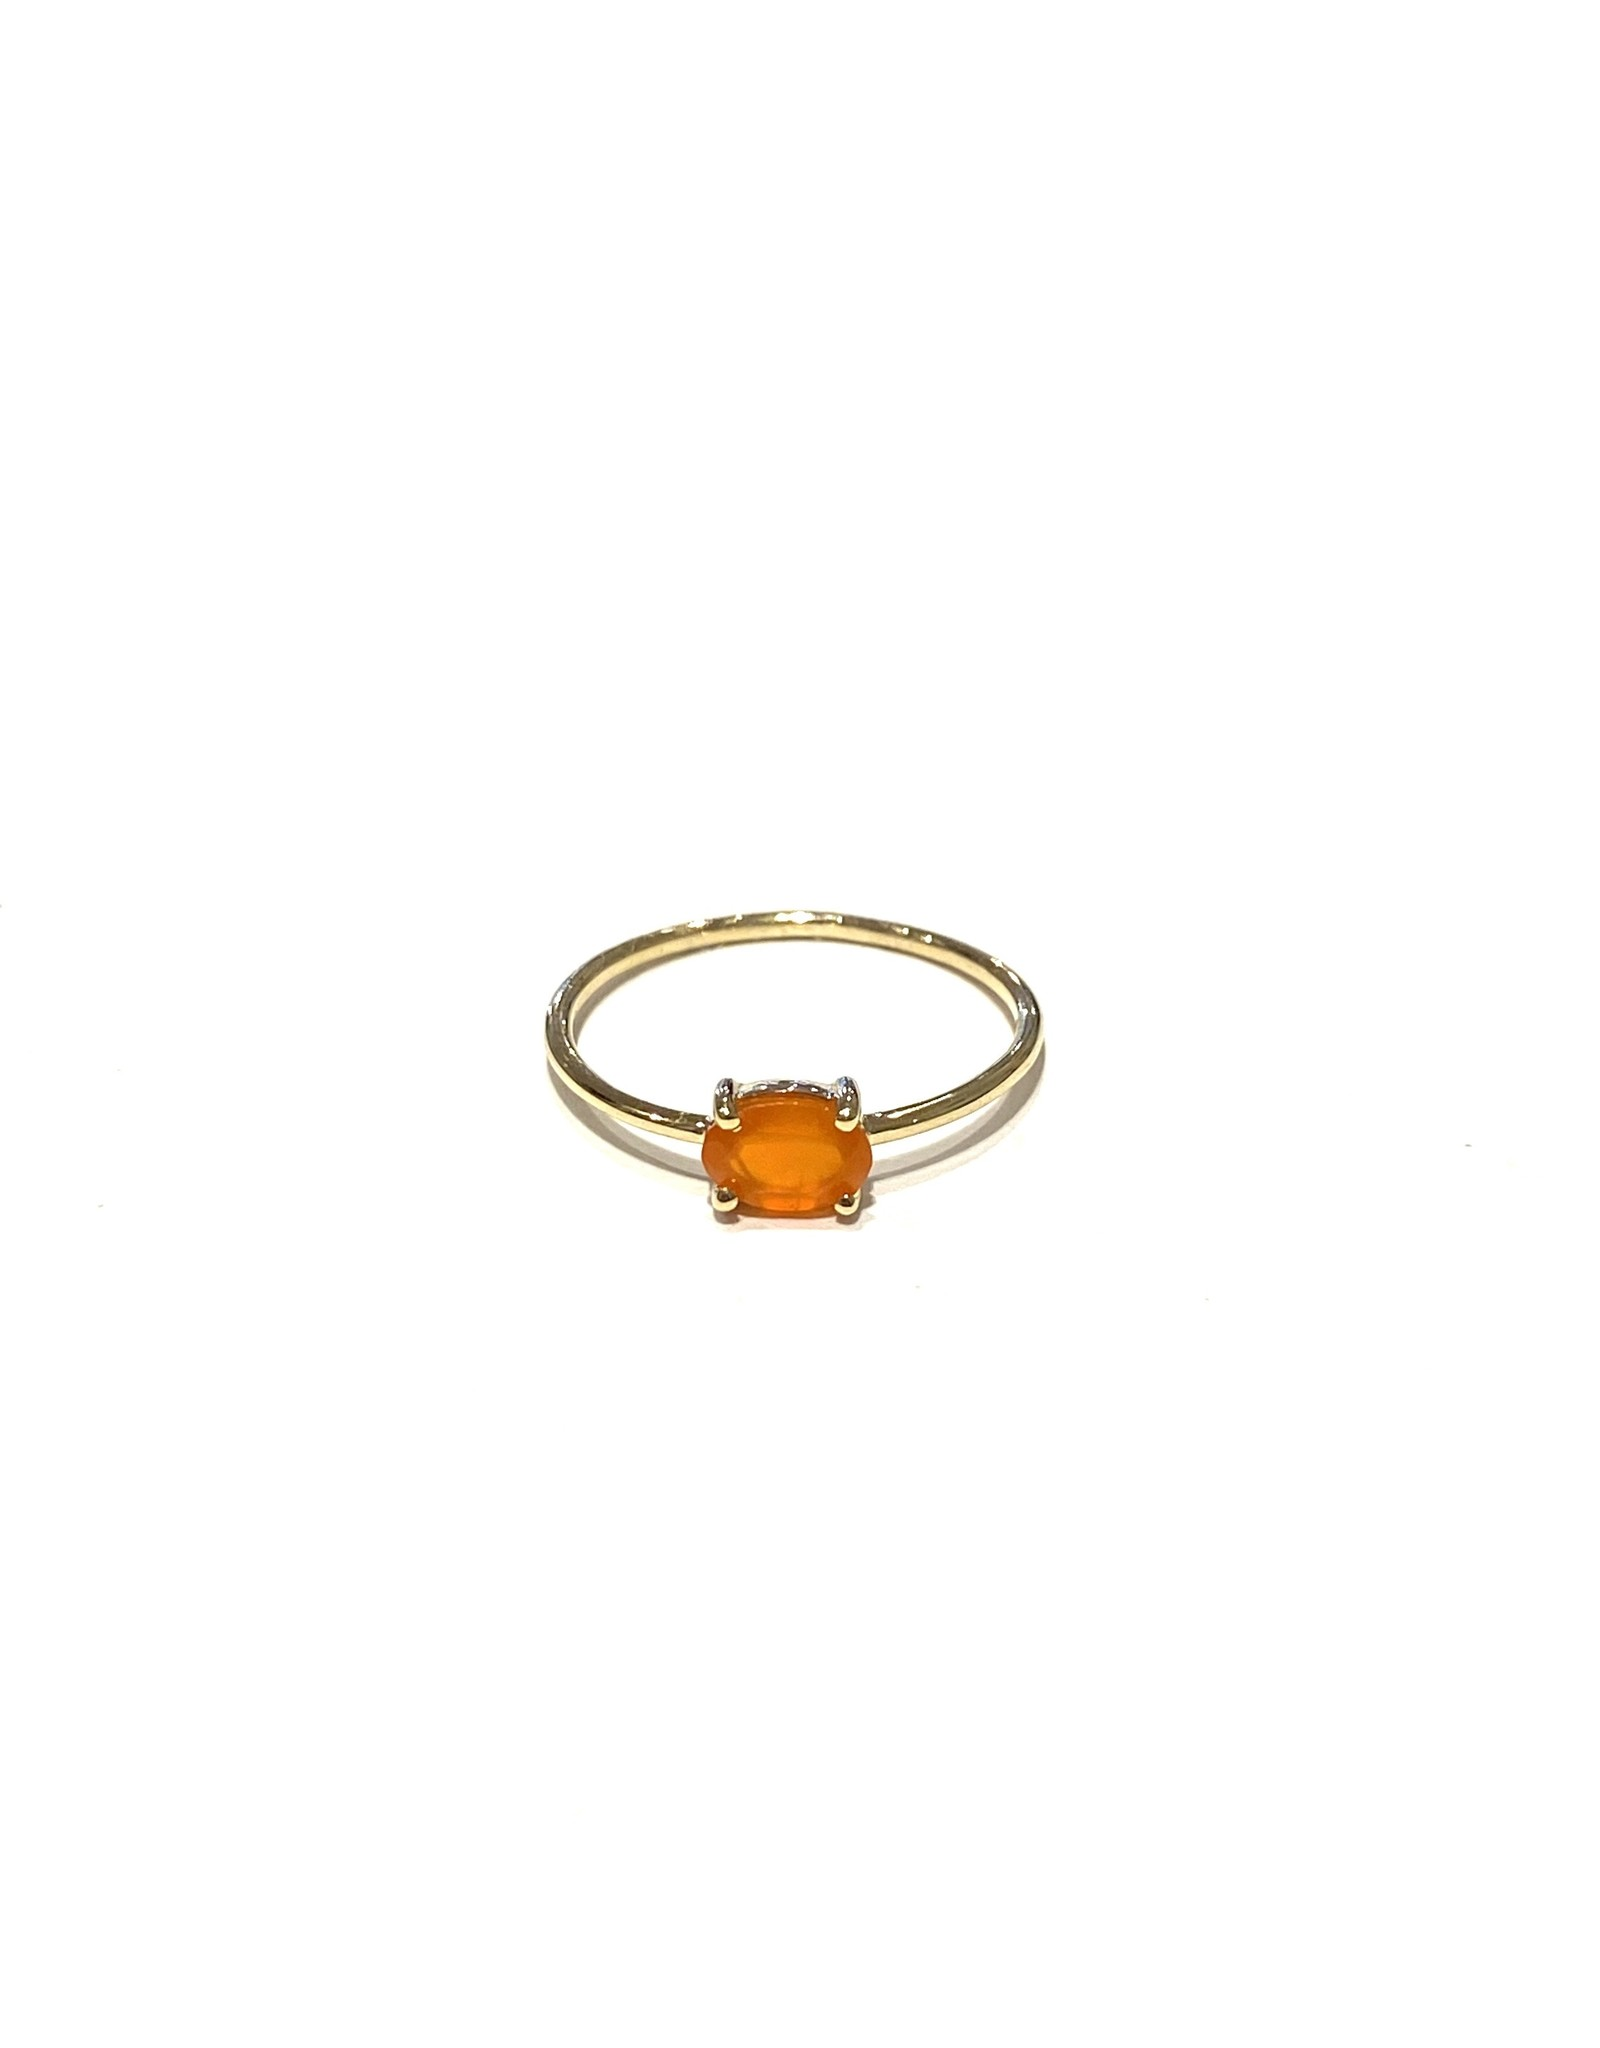 Bo Gold Ring - Goud - Carneool